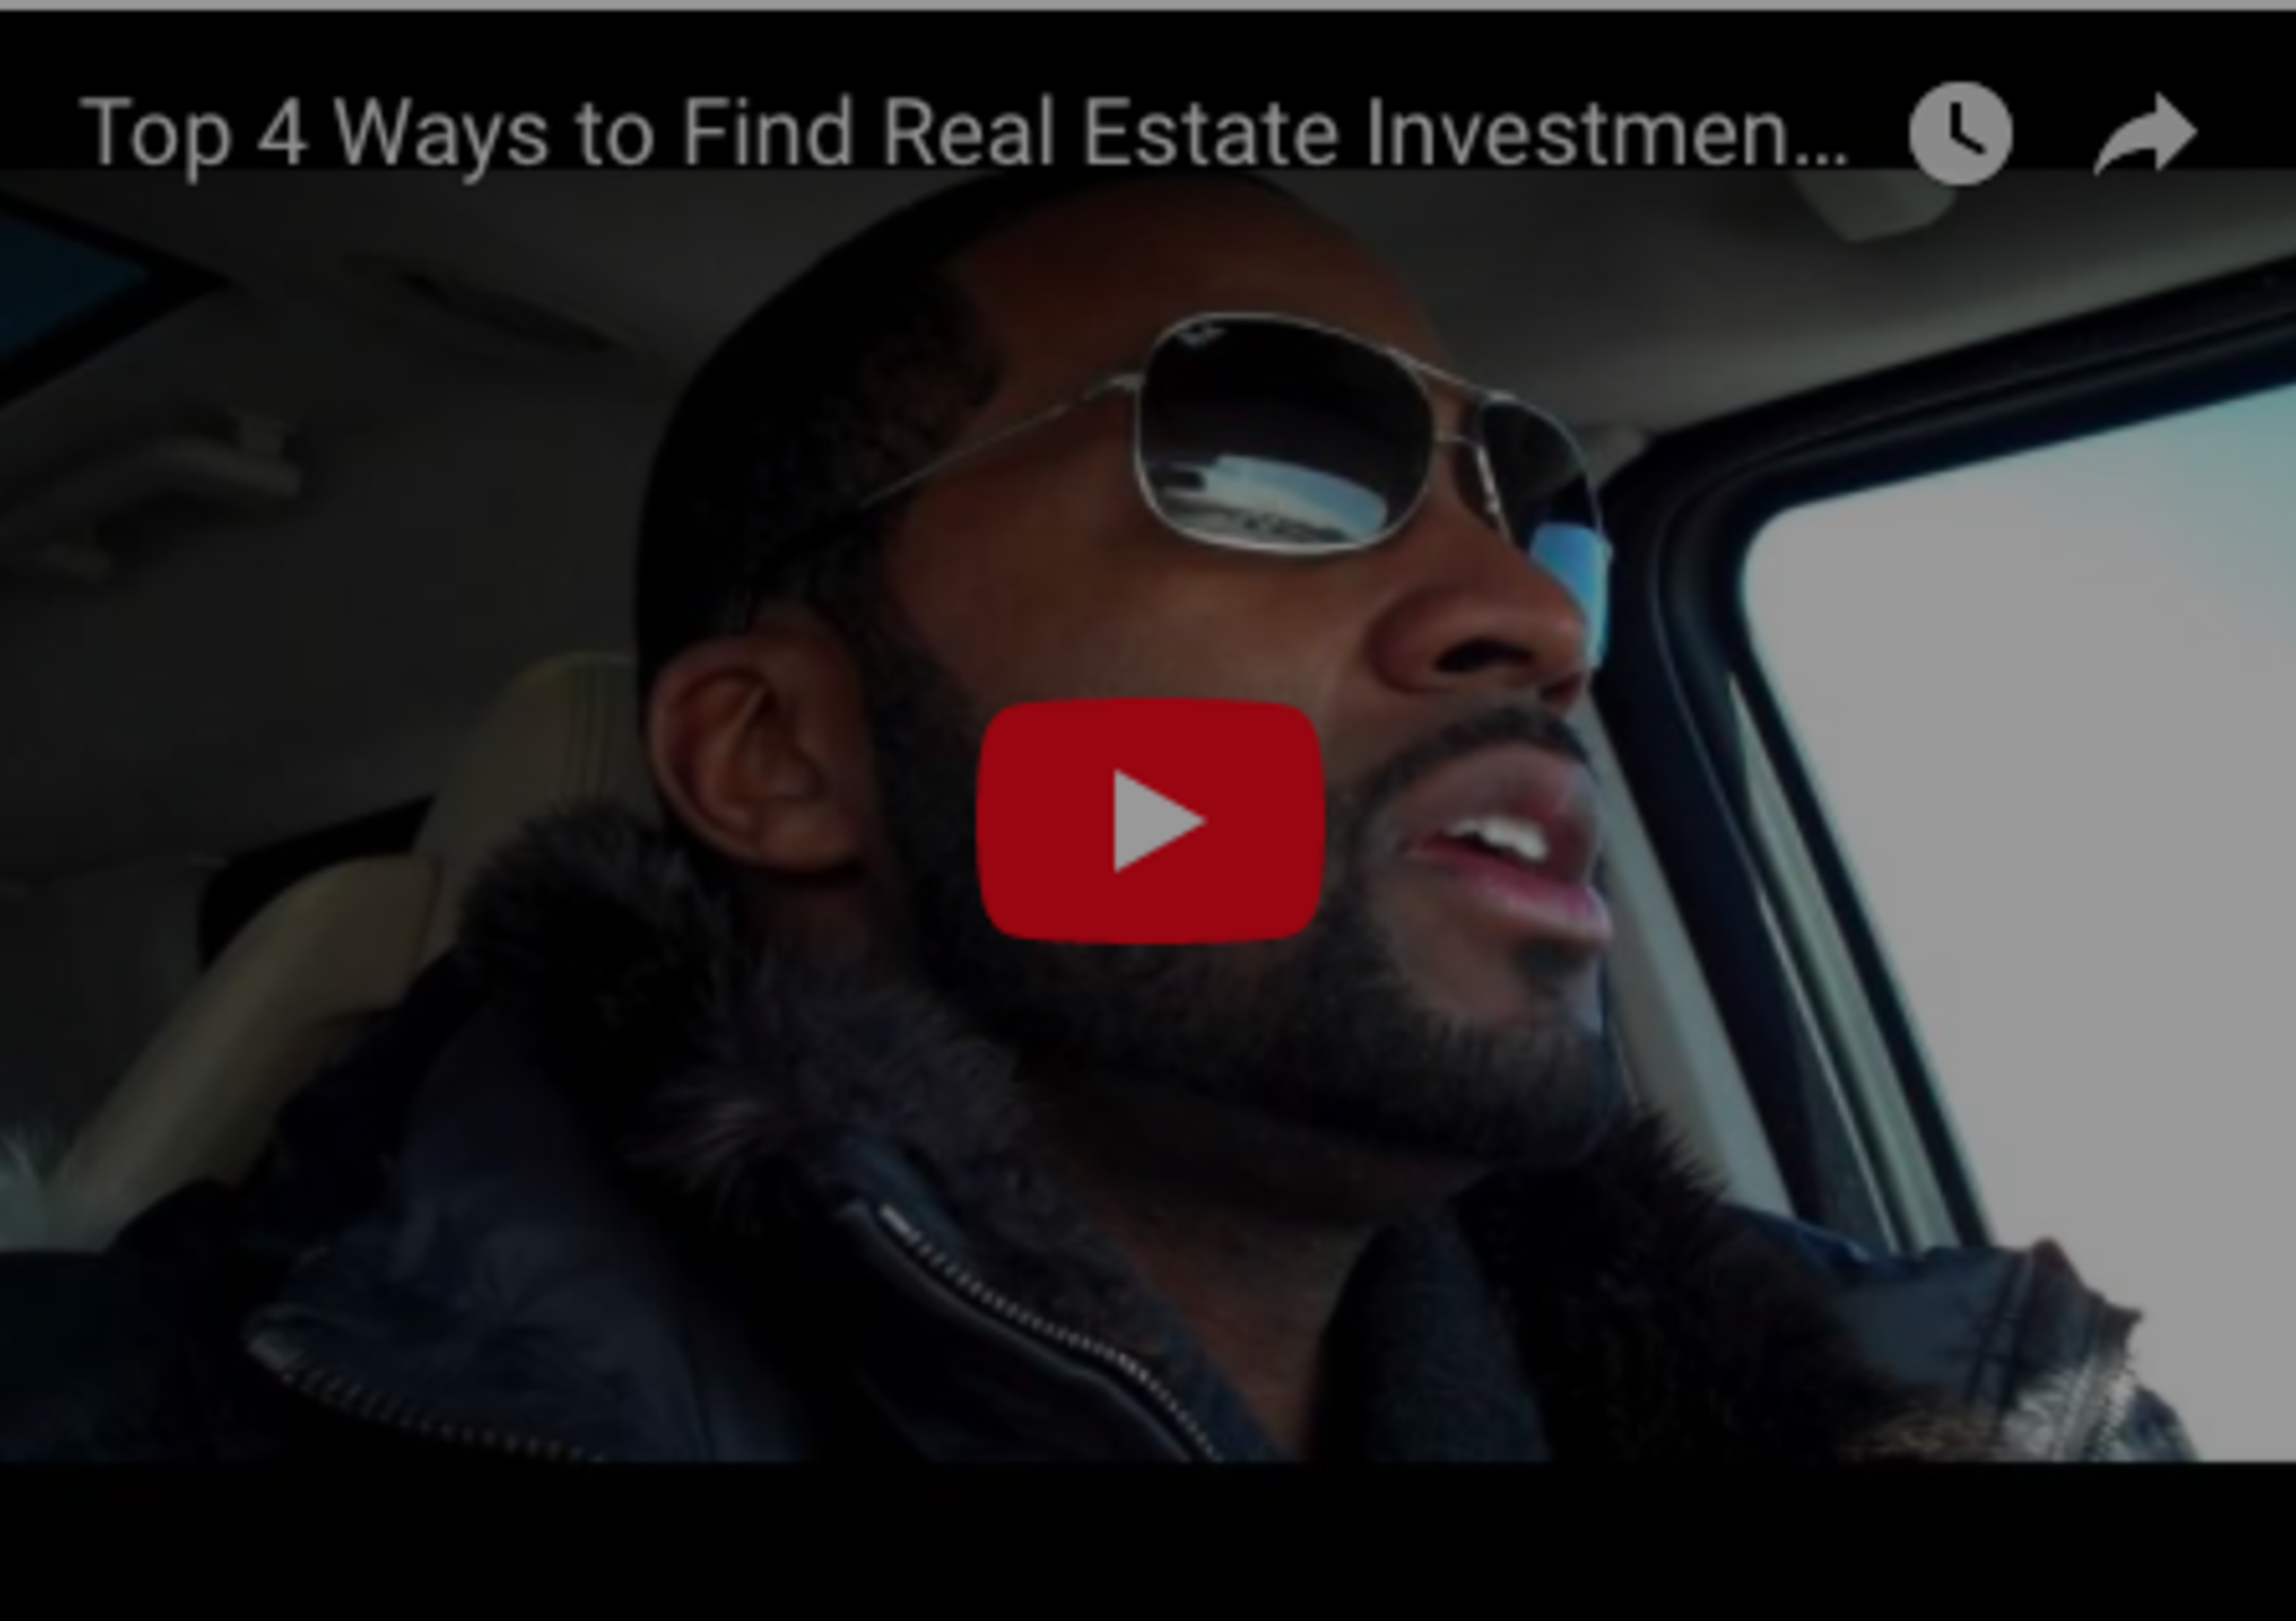 Top 4 Ways to Find Real Estate Investment Deals